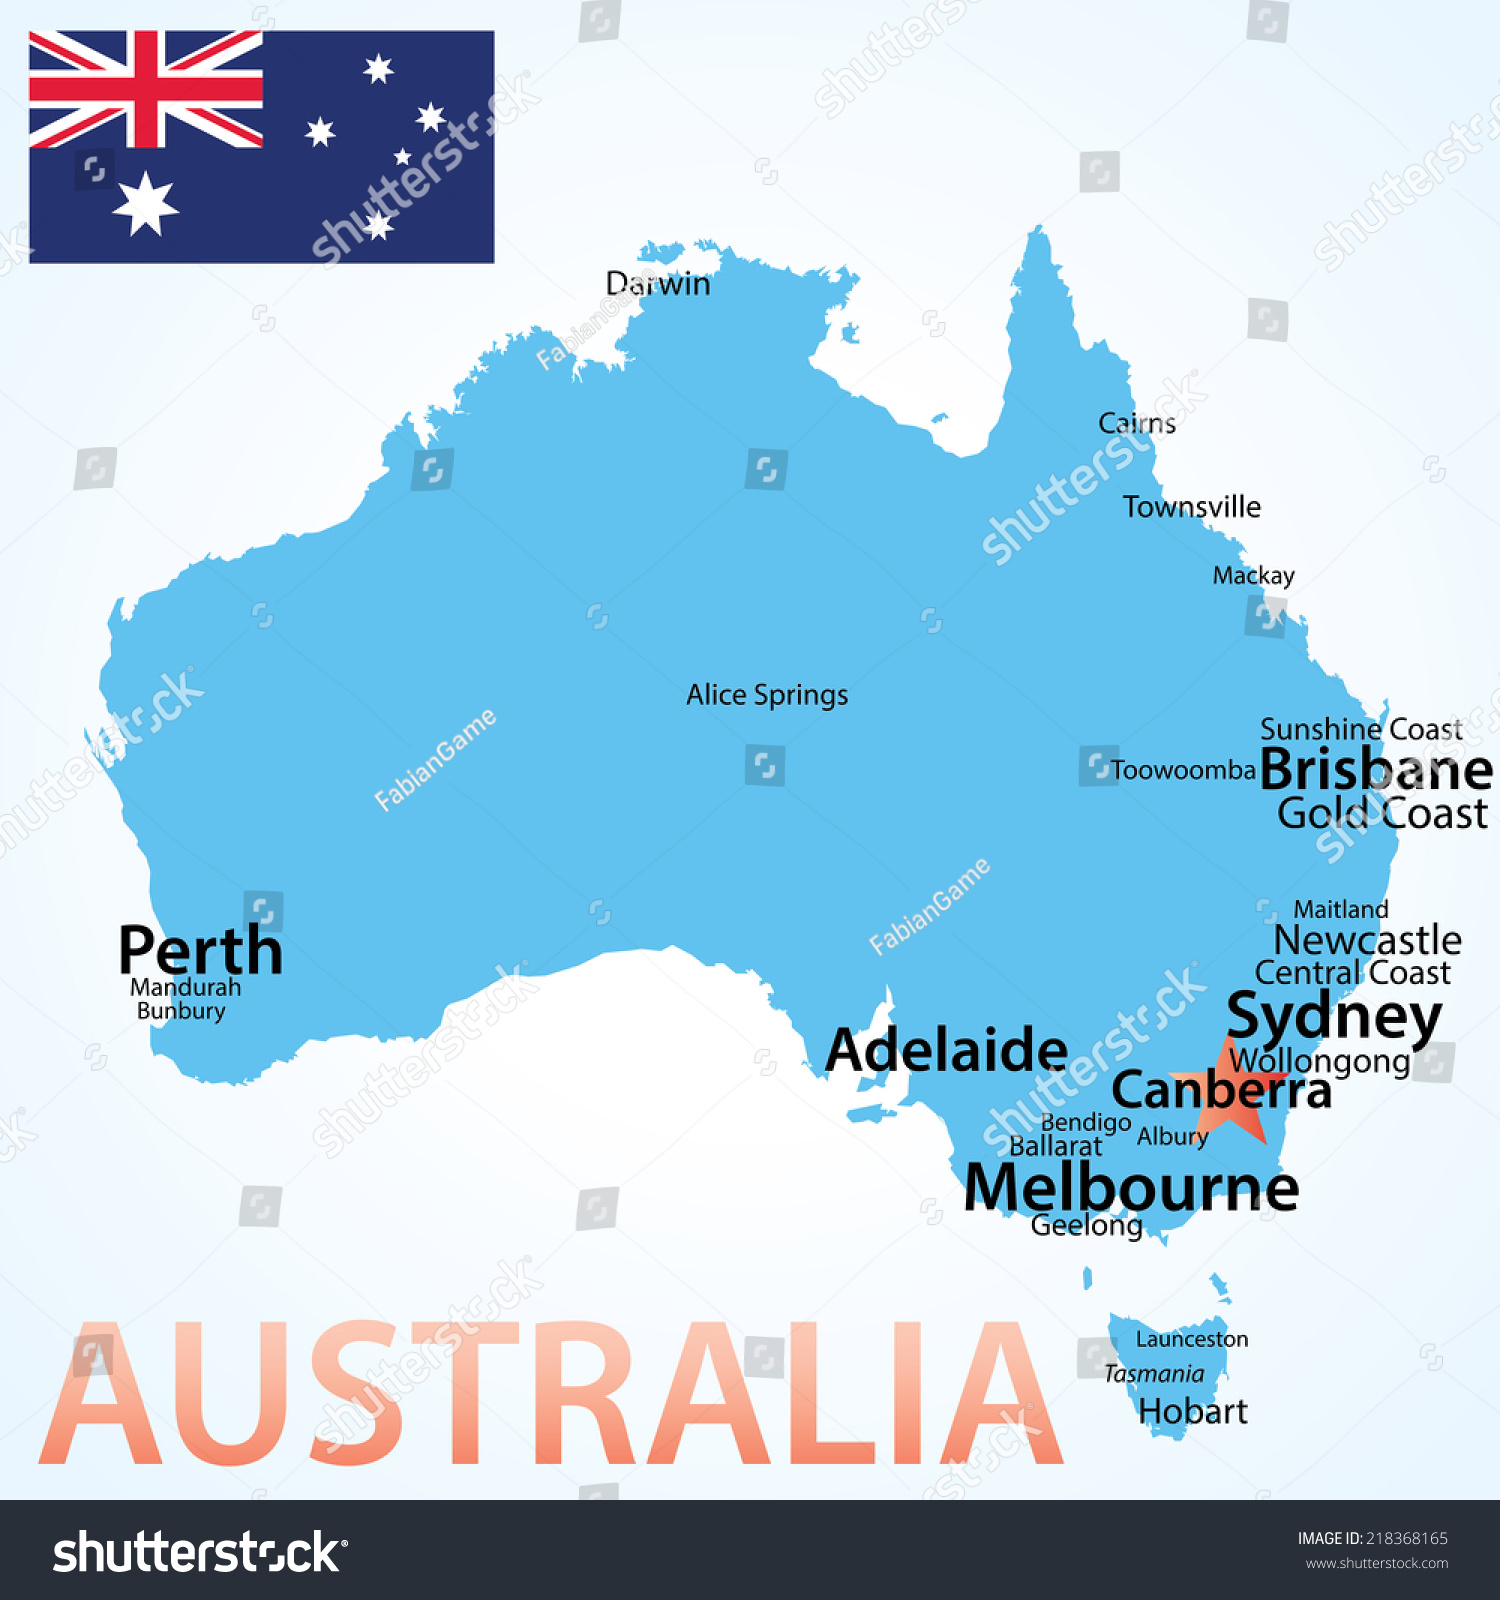 Australia Map Largest Cities Carefully Scaled Stock Vector - Australia map cities